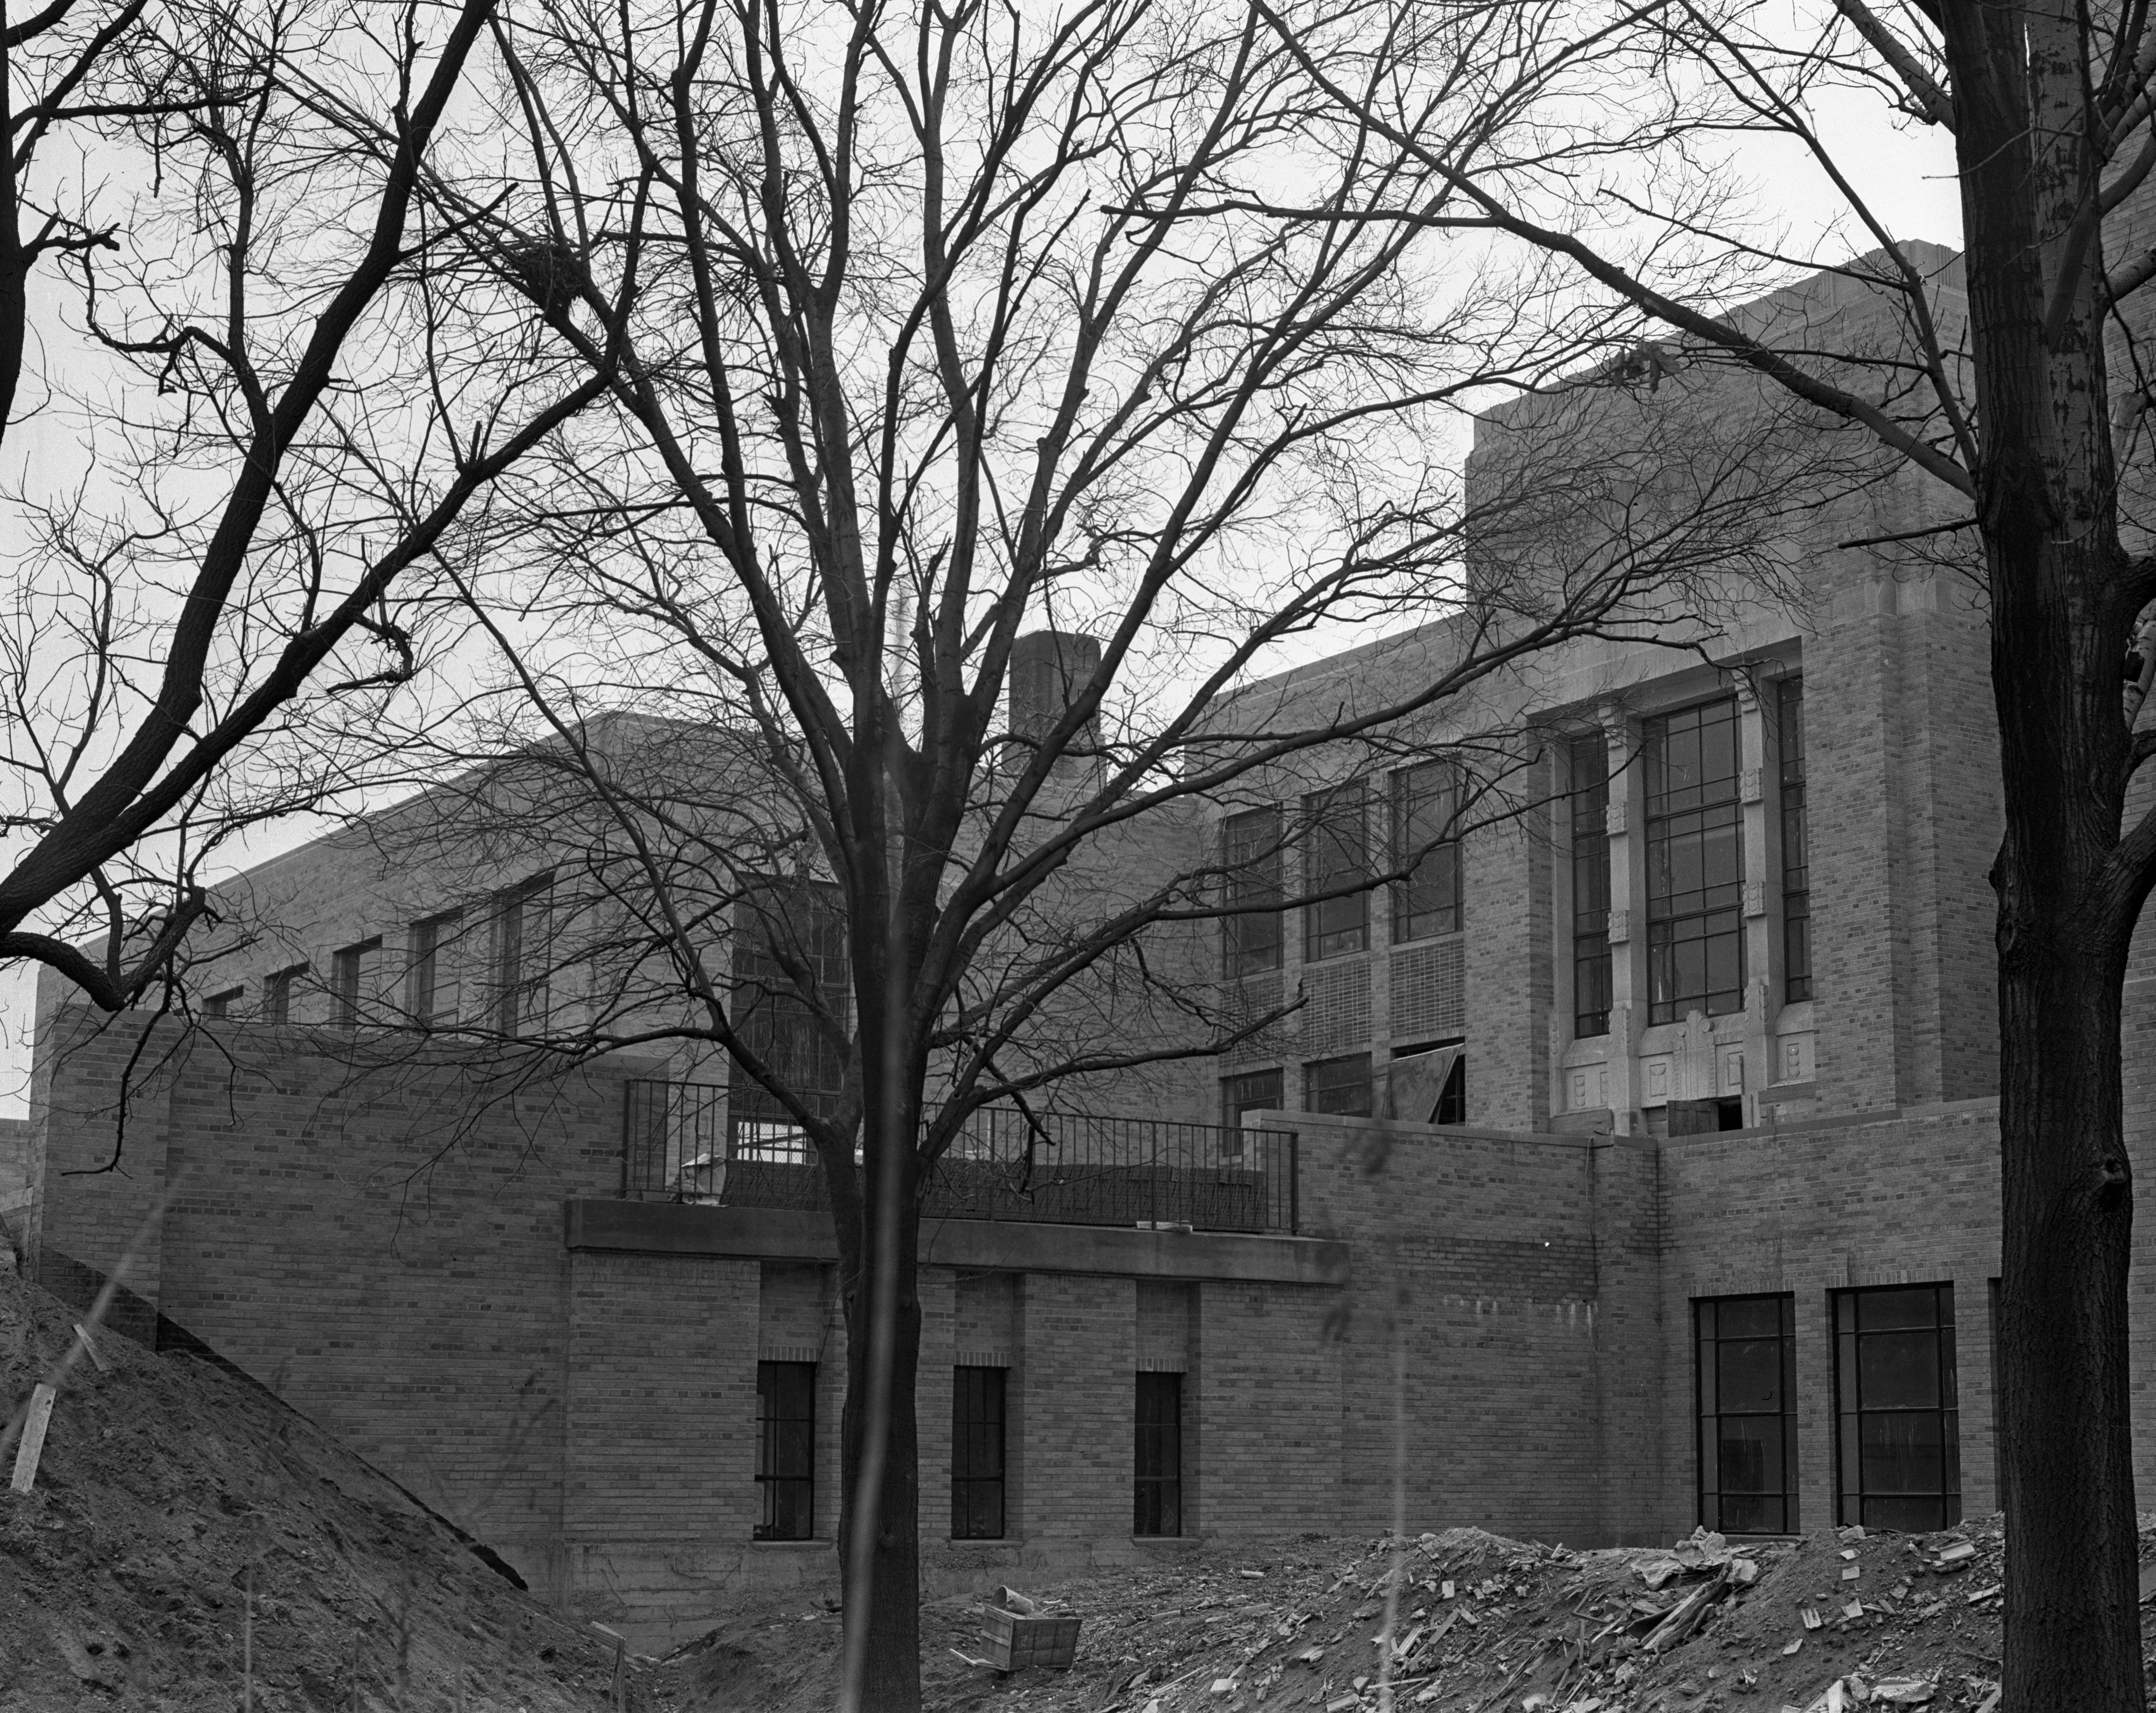 Slauson School Nears Completion, April 1937 image